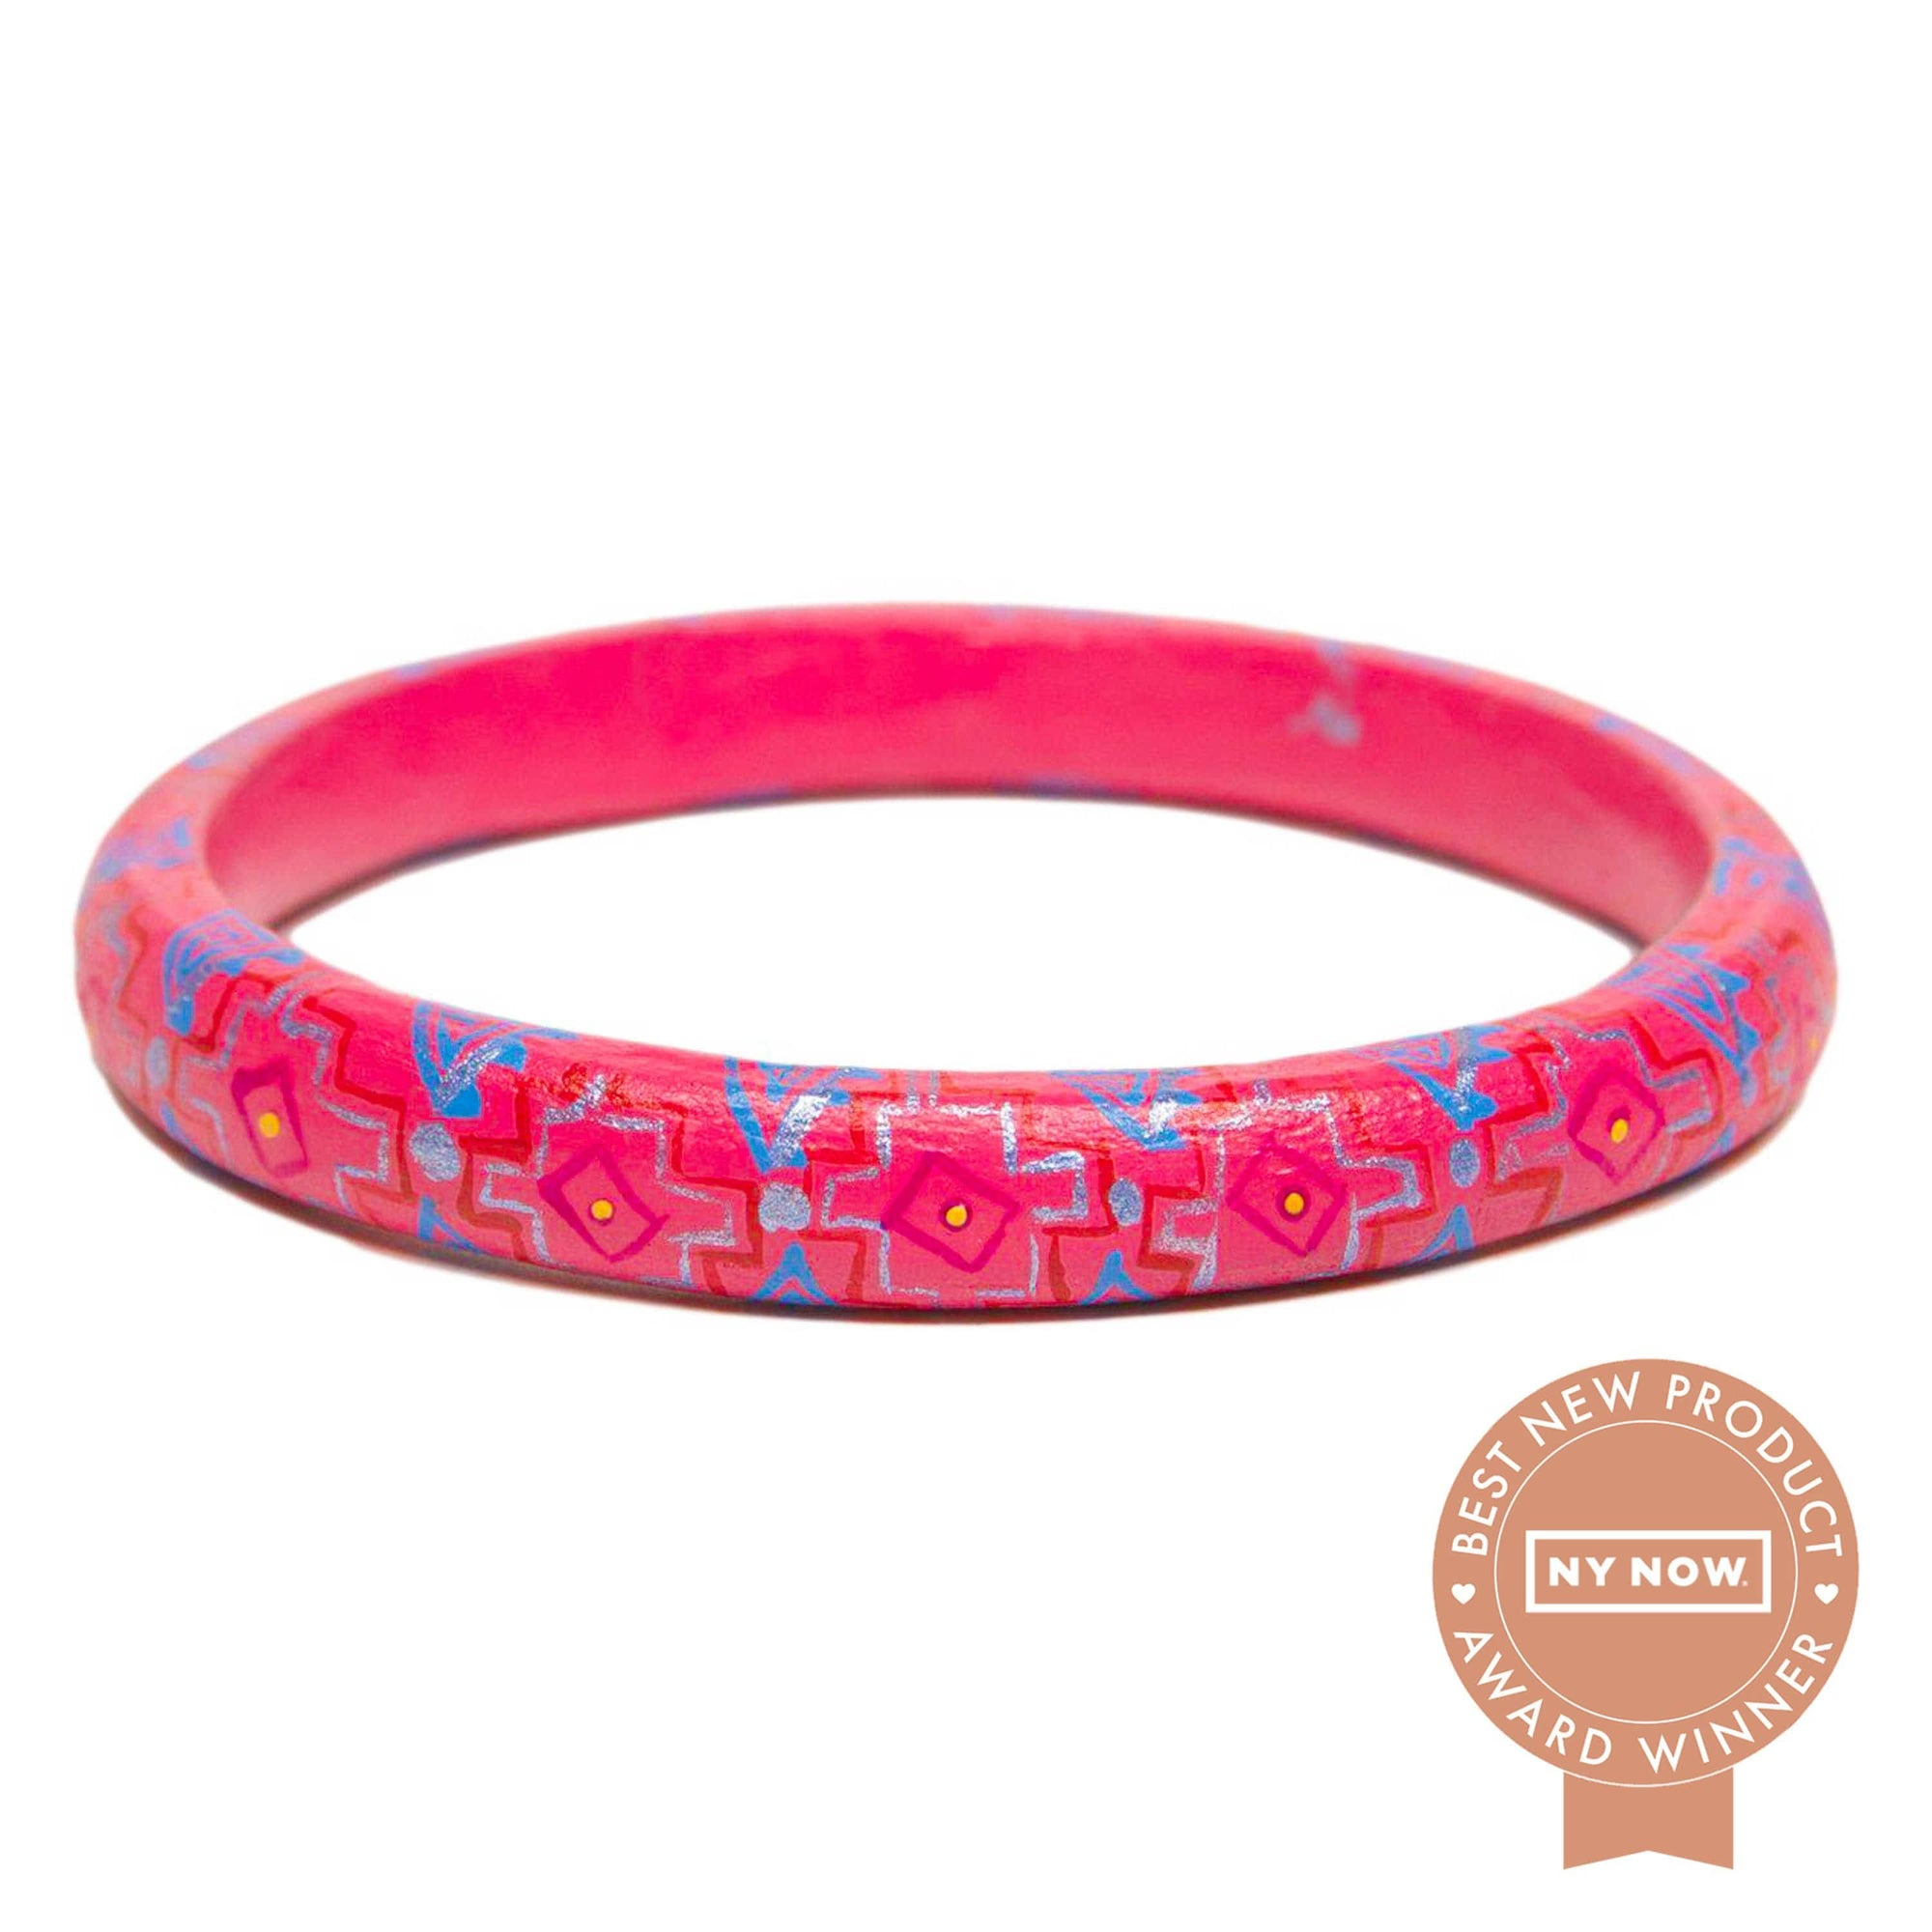 Corazon Wooden Bangle - Pink